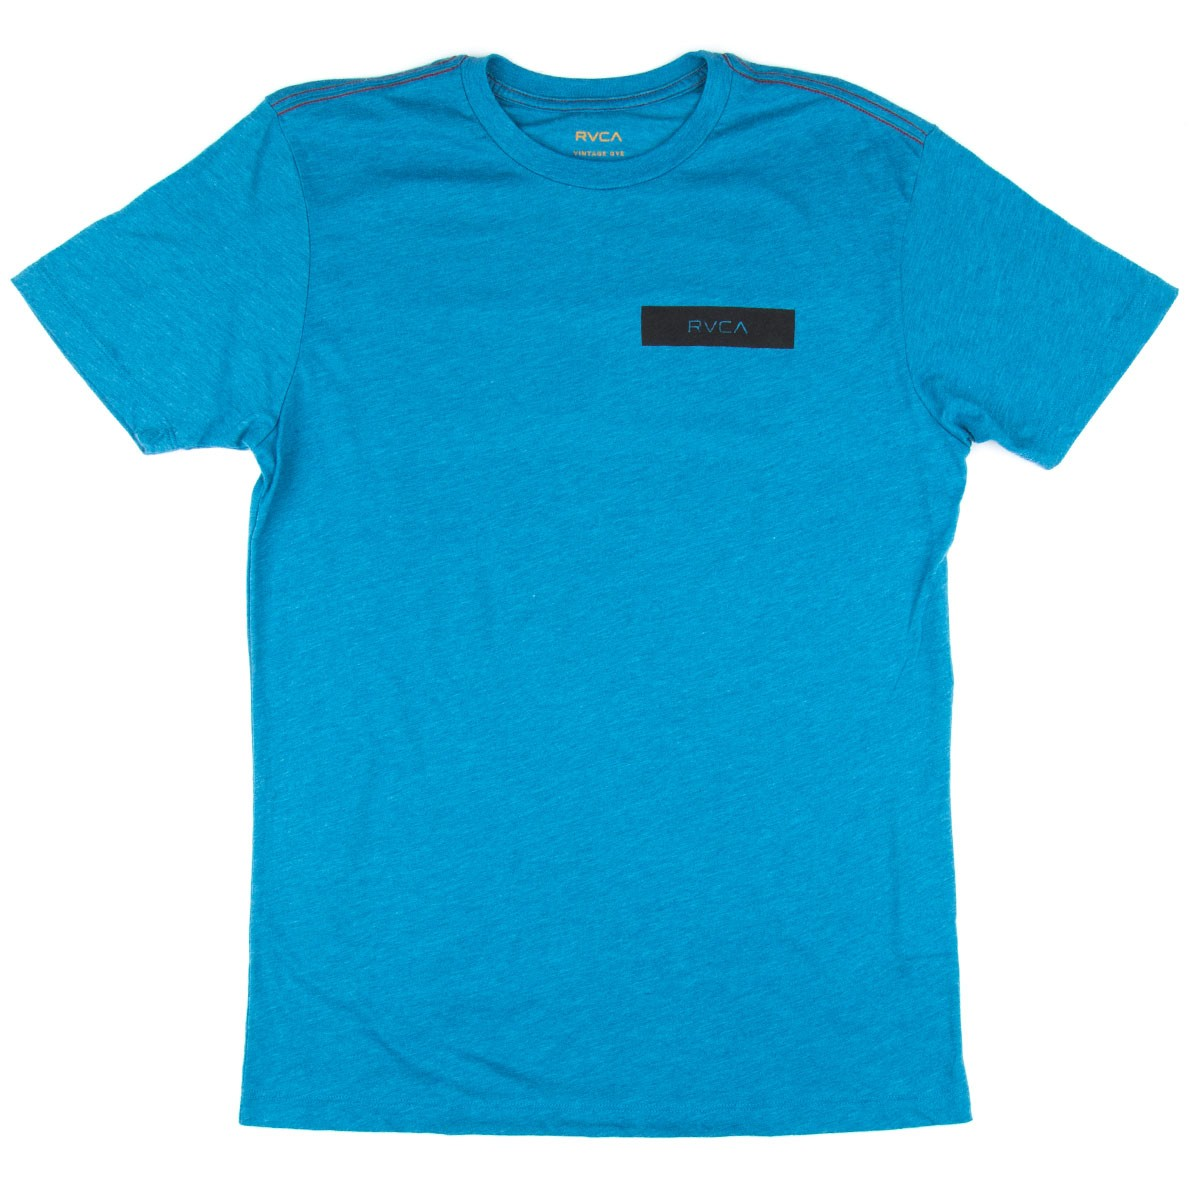 Rvca rvca bars t shirt french blue for French blue t shirt